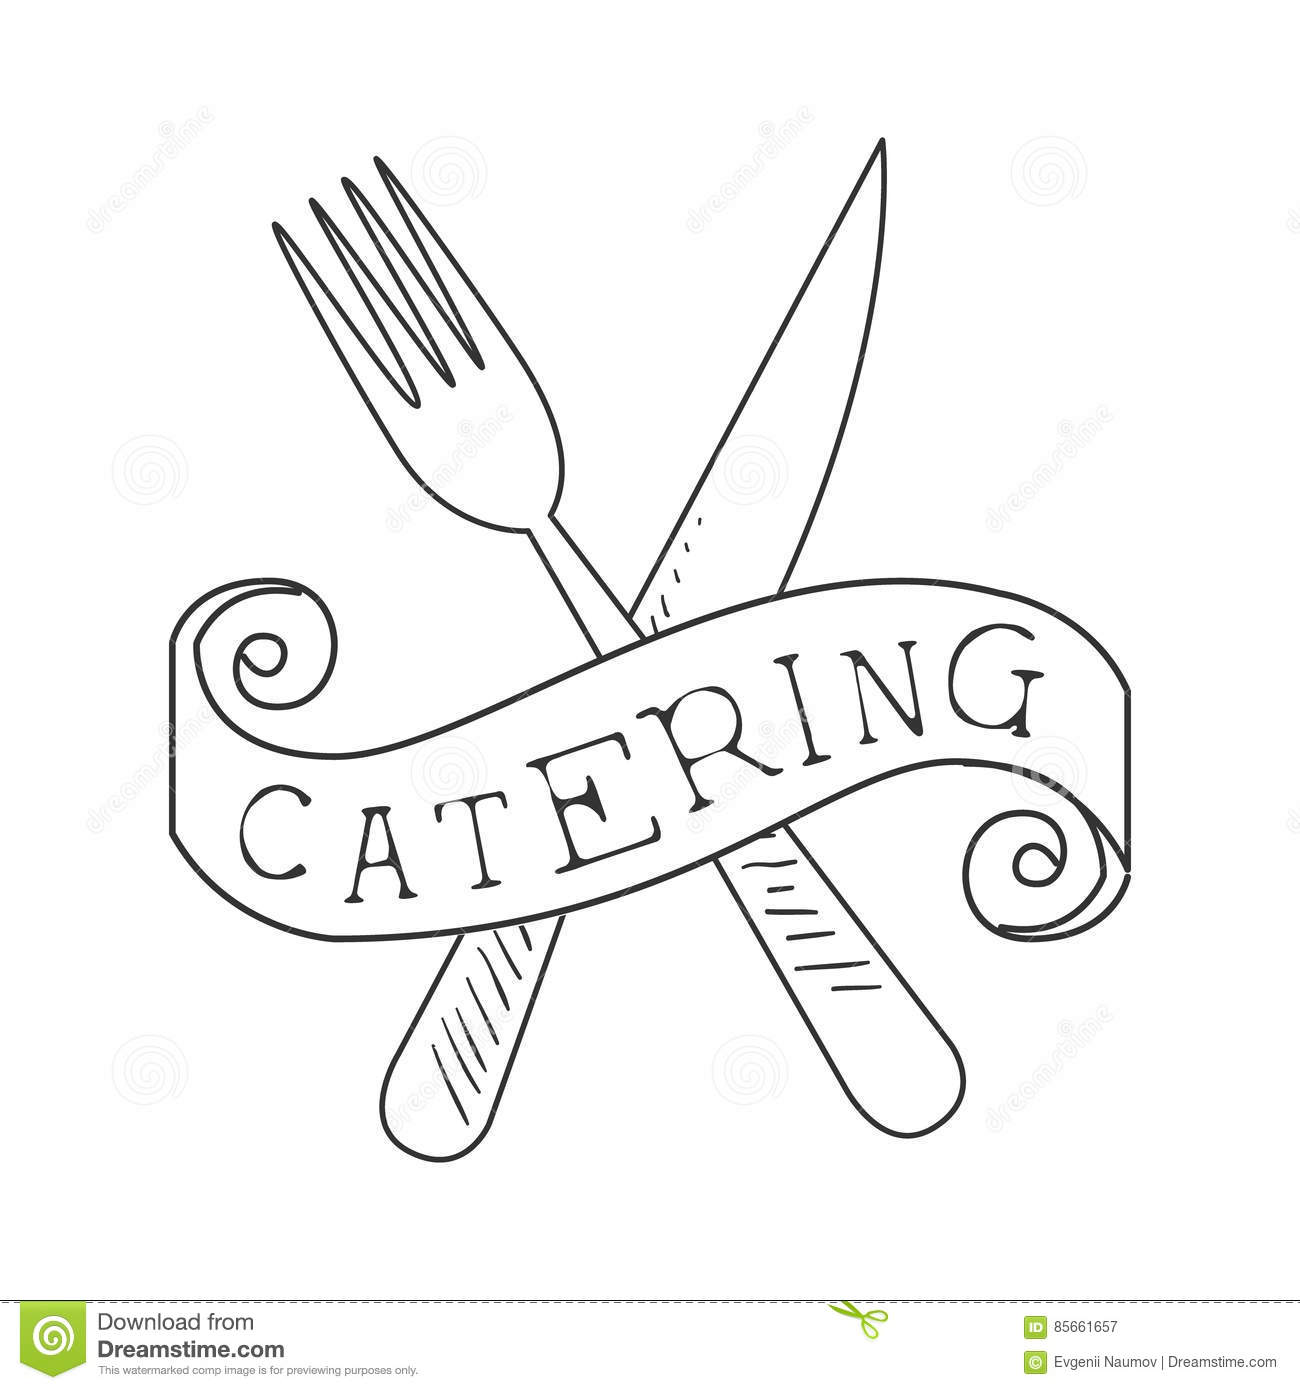 best catering service hand drawn black and white sign with crossed